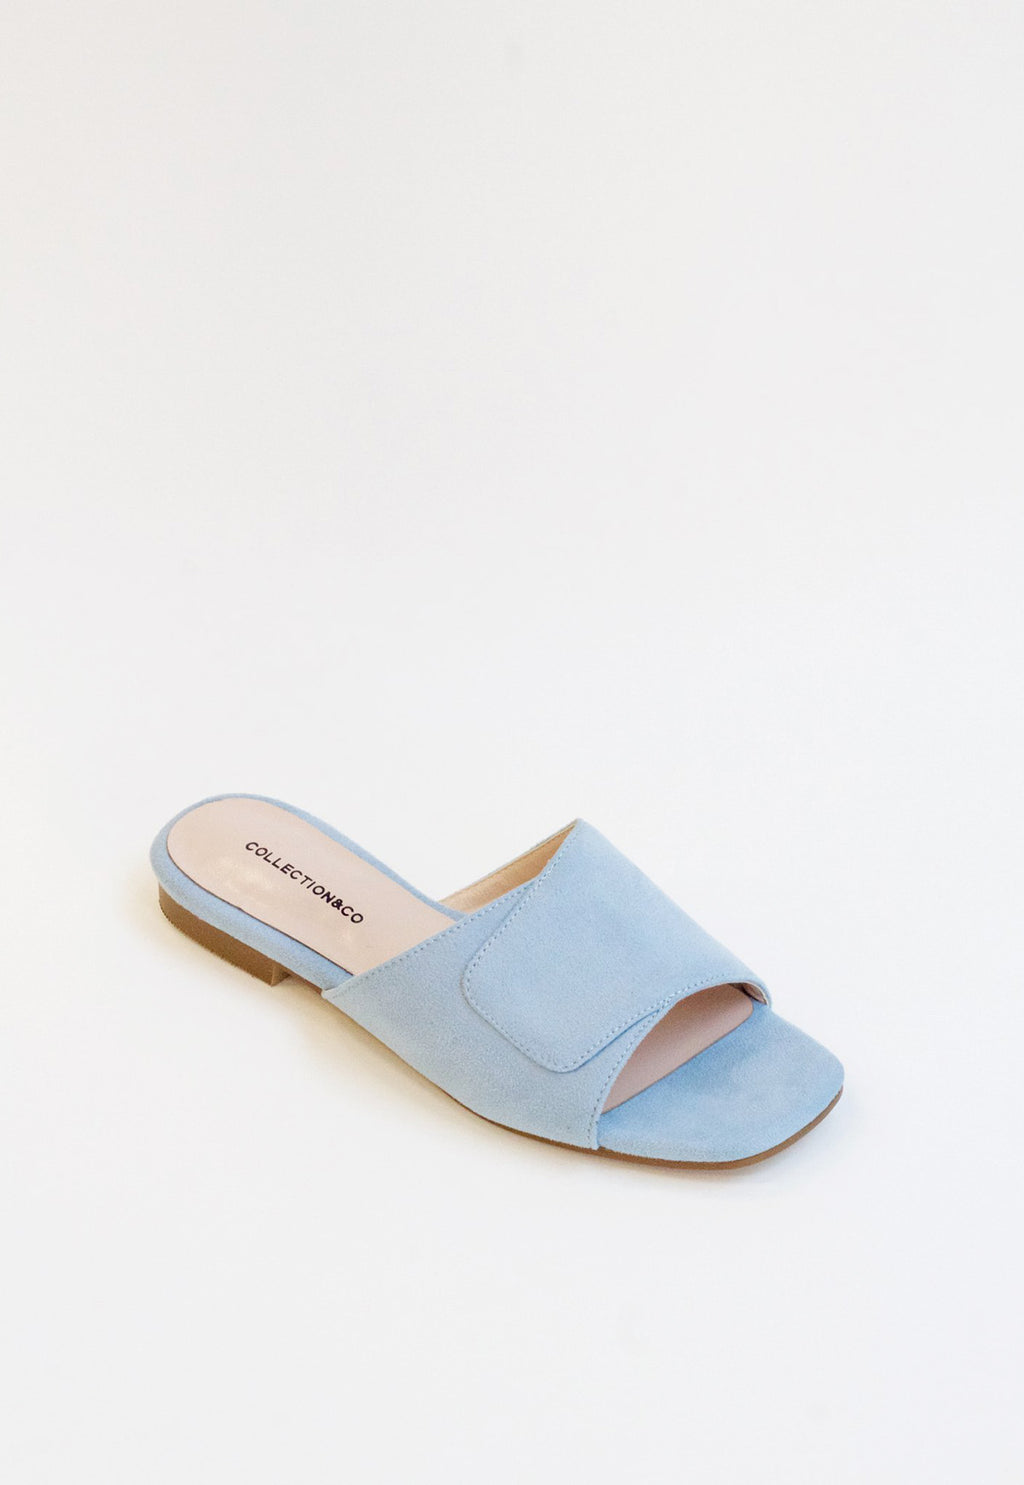 Elia Crossover Slide in Baby Blue, shoes, Collection & Co, - nois